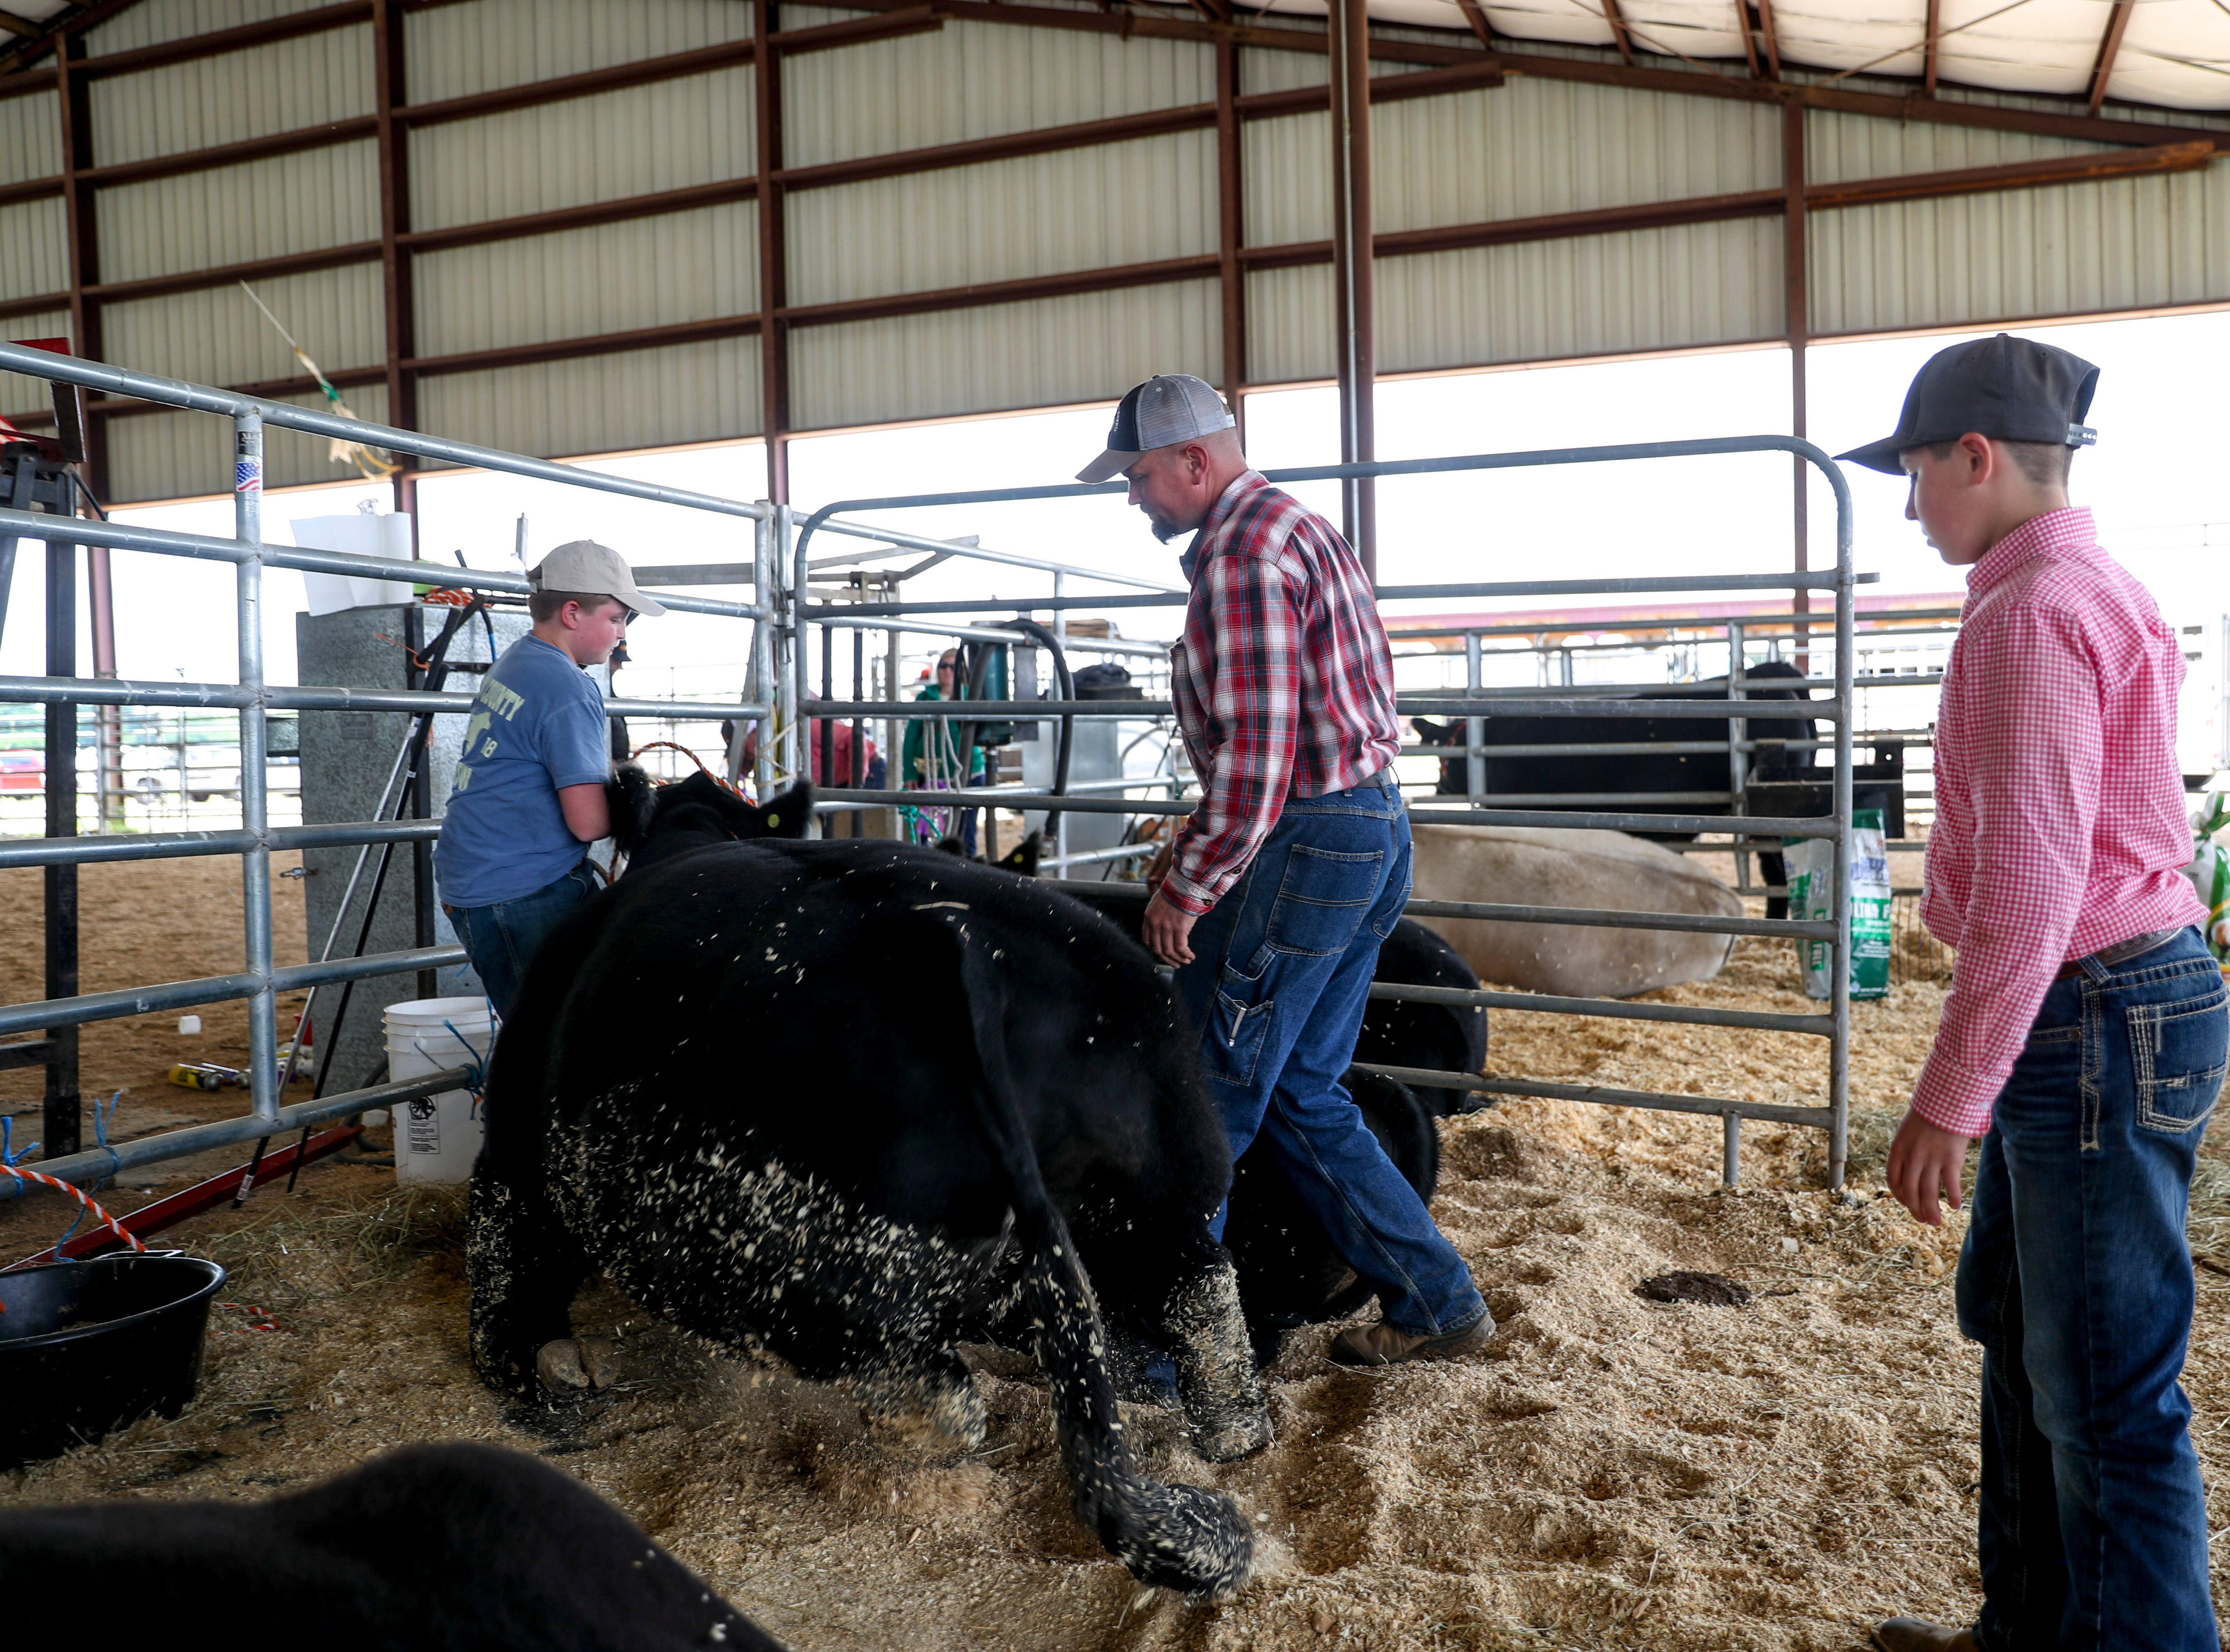 Hands encourage Boomer, the Grand Champion raised by Augustus Rye at the 69th annual Clarksville Area Junior Better Beef Show at the John Bartee Agricultural Center in Clarksville, Tenn., on Tuesday, May 14, 2019.